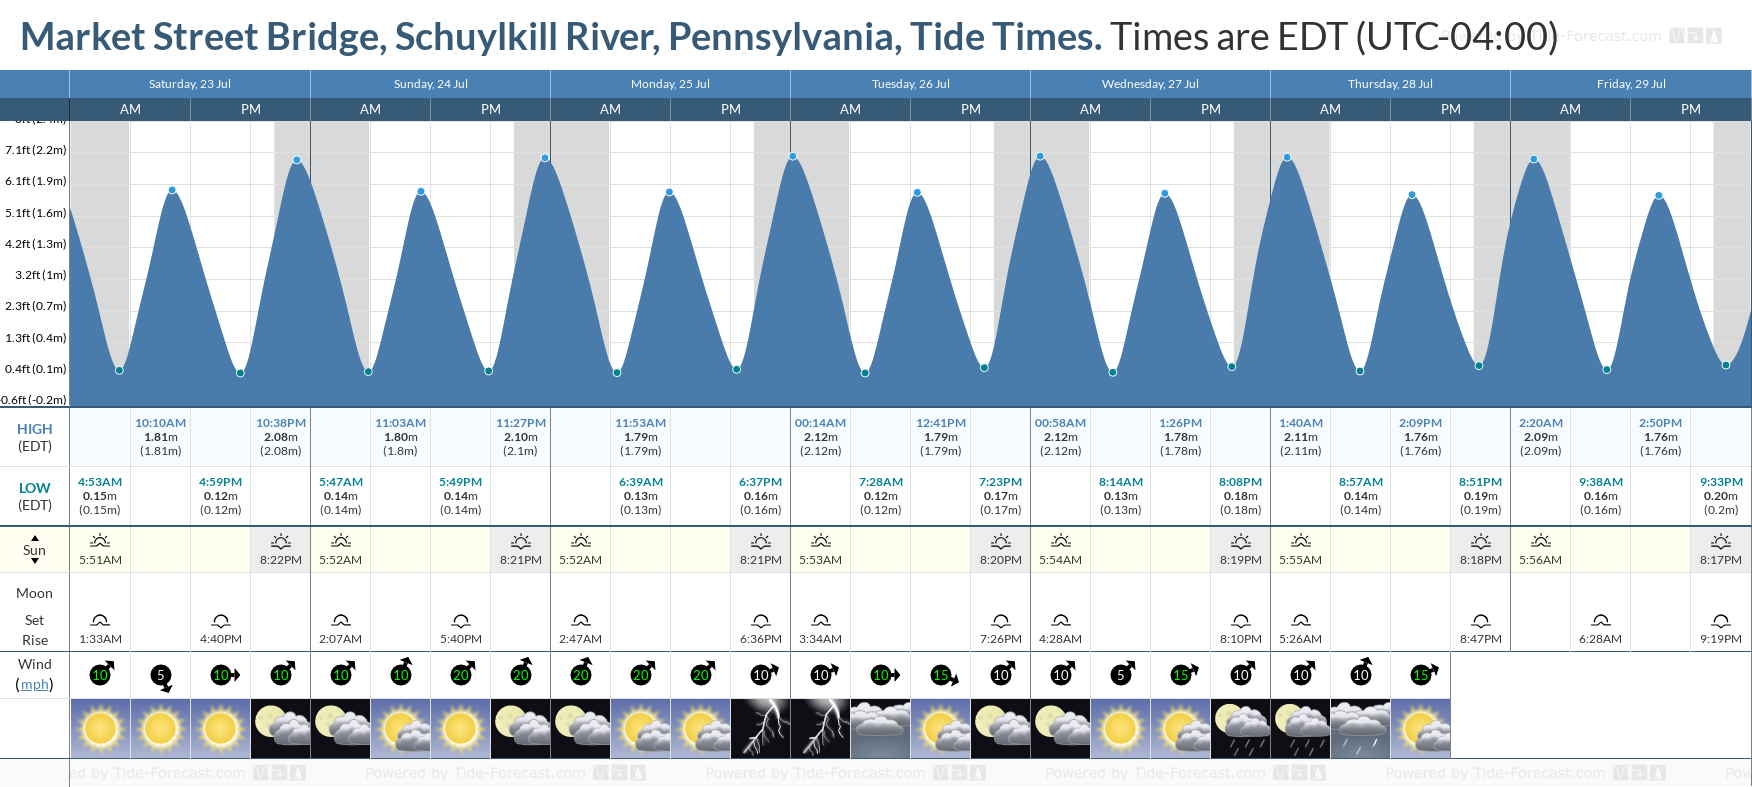 Market Street Bridge, Schuylkill River, Pennsylvania Tide Chart including high and low tide tide times for the next 7 days